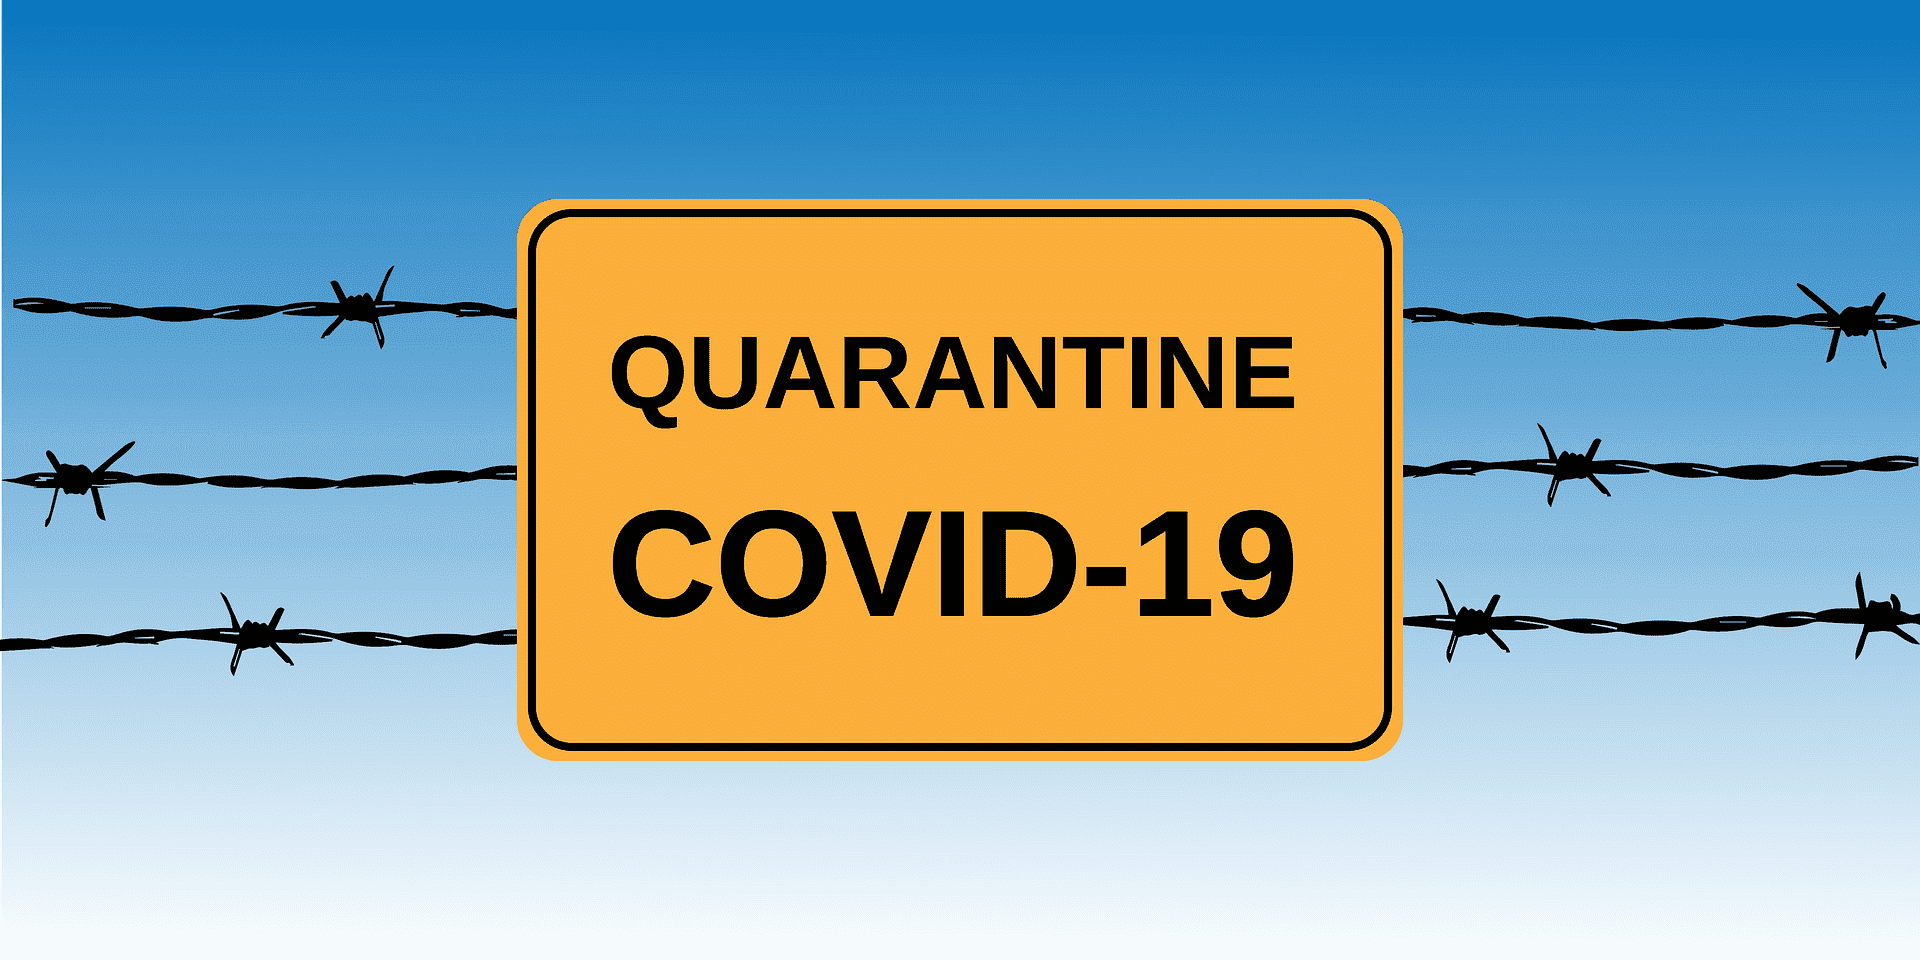 insigne de quarantaine au coronavirus | Source : Getty Images